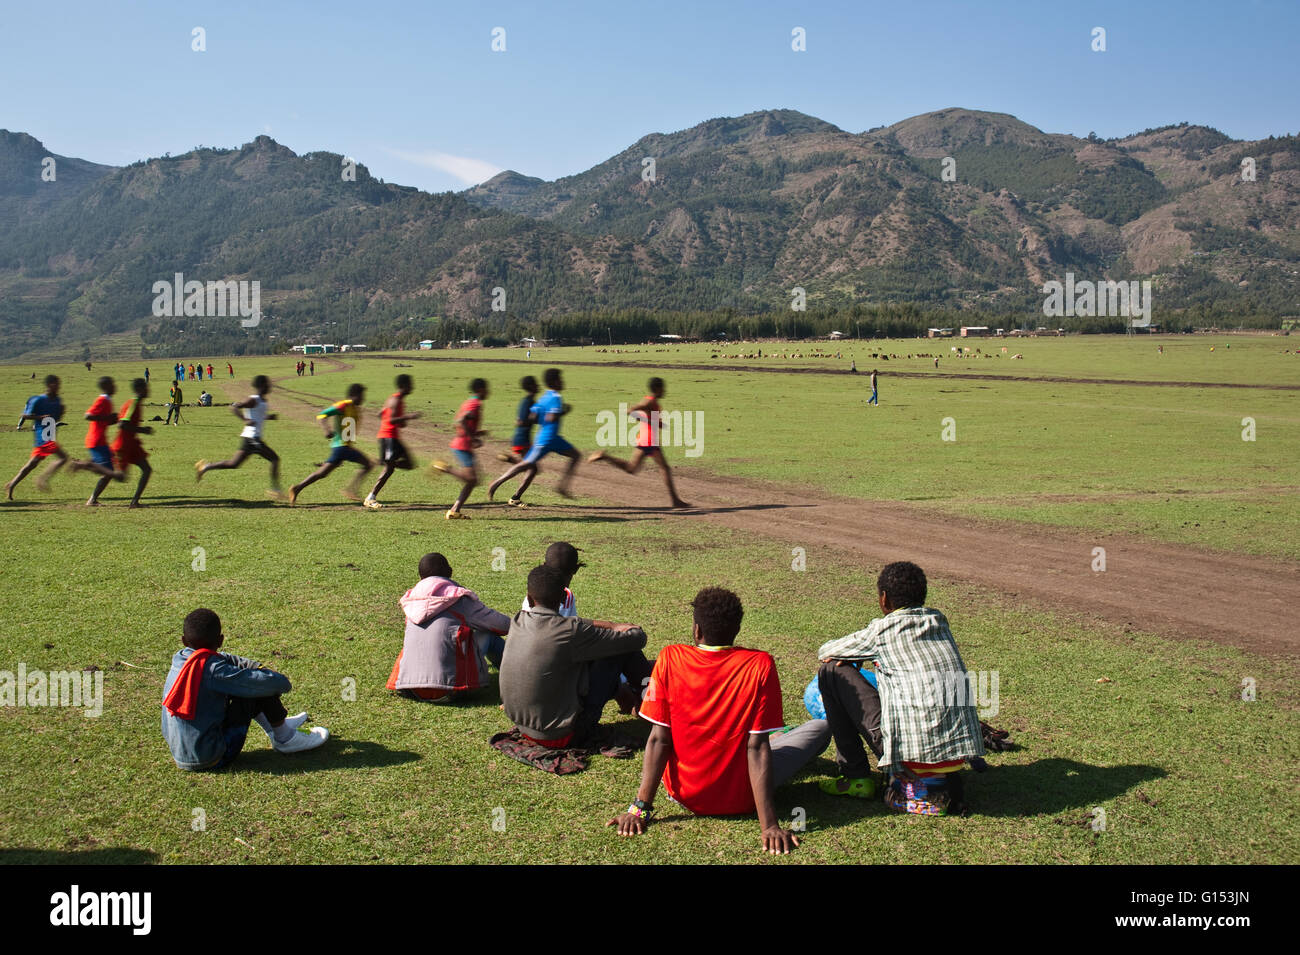 Long distance race at the local level at the altitude of 2500 m. - Stock Image